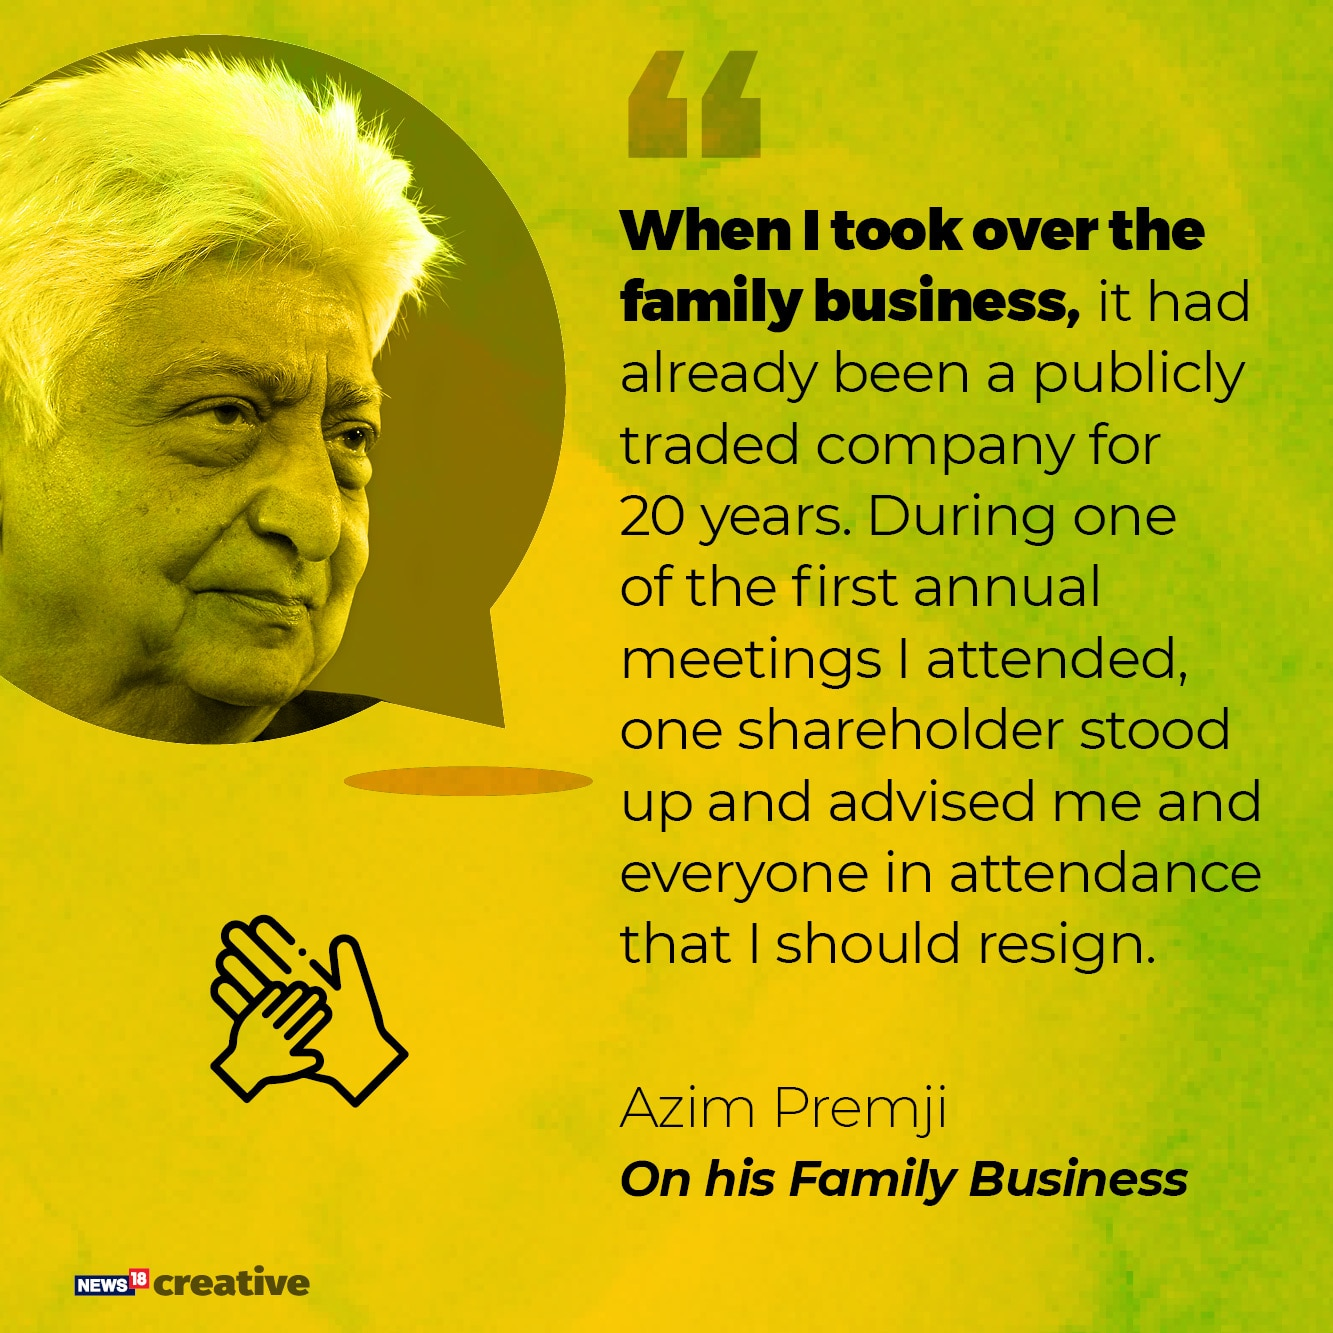 On Family Business: When I took over the family business, it had already been a publicly traded company for 20 years. During one of the first annual meetings I attended, one shareholder stood up and advised me and everyone in attendance that I should resign.